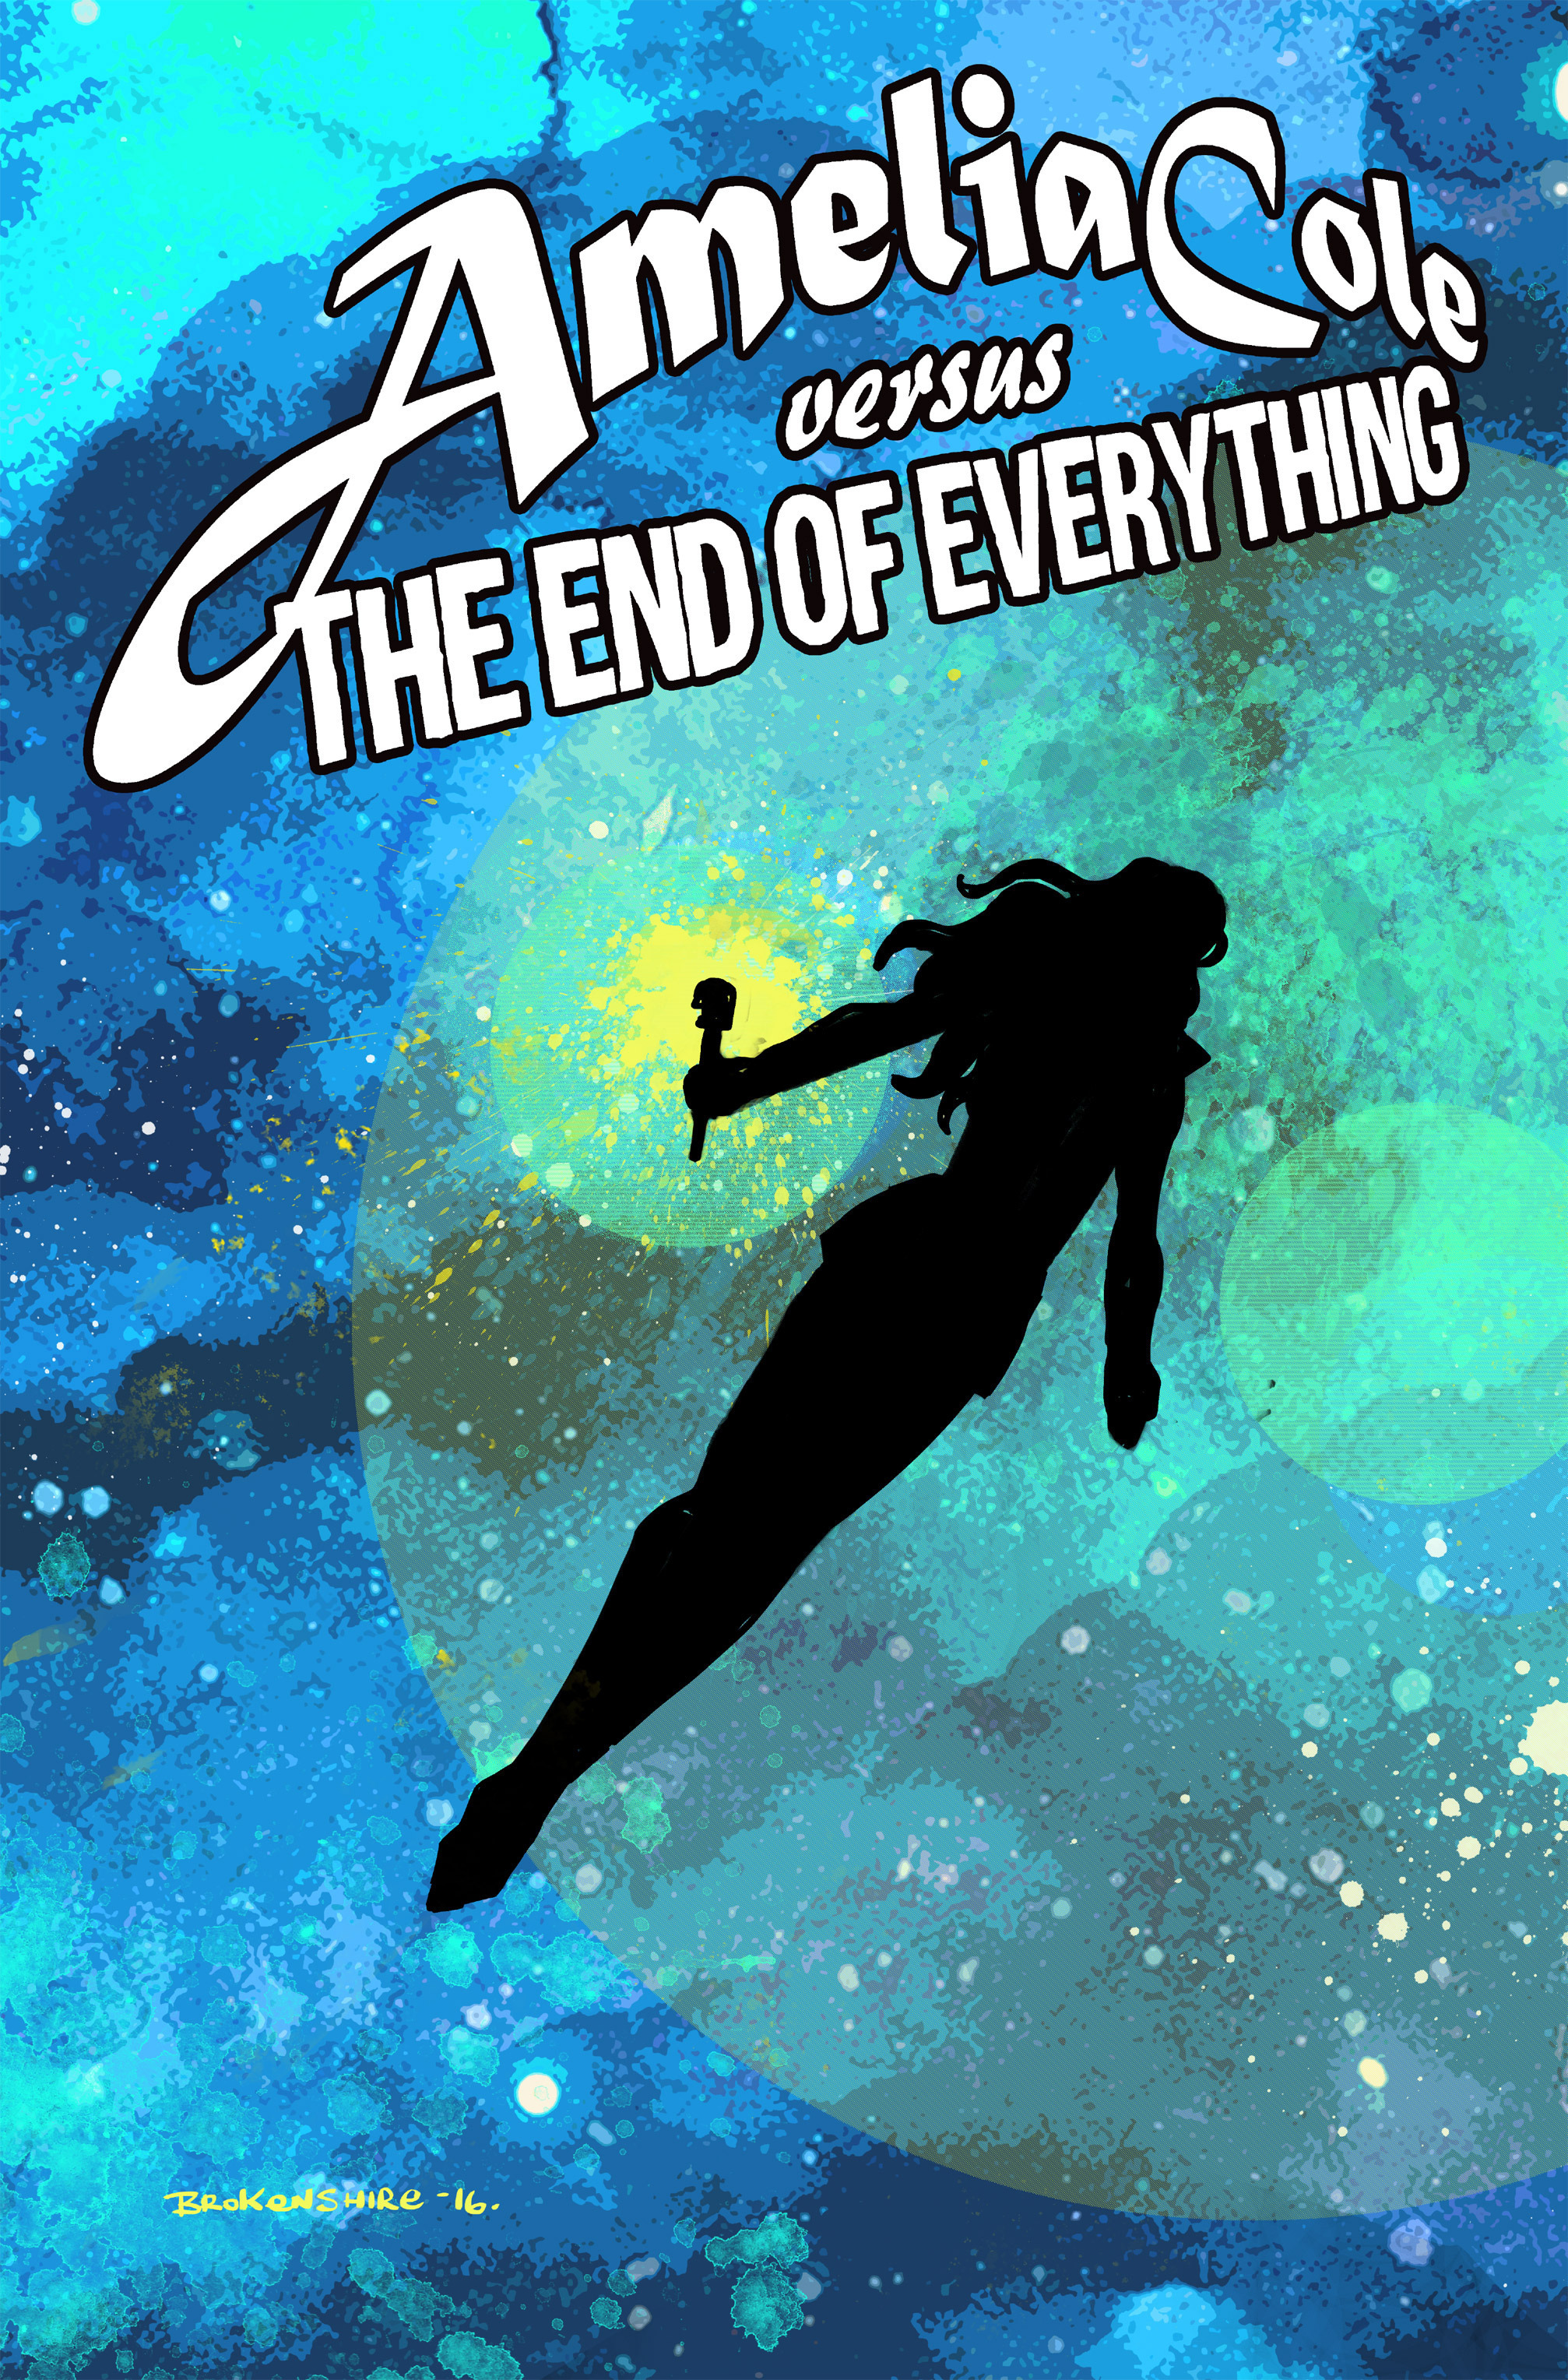 Read online Amelia Cole Versus The End of Everything comic -  Issue #30 - 1